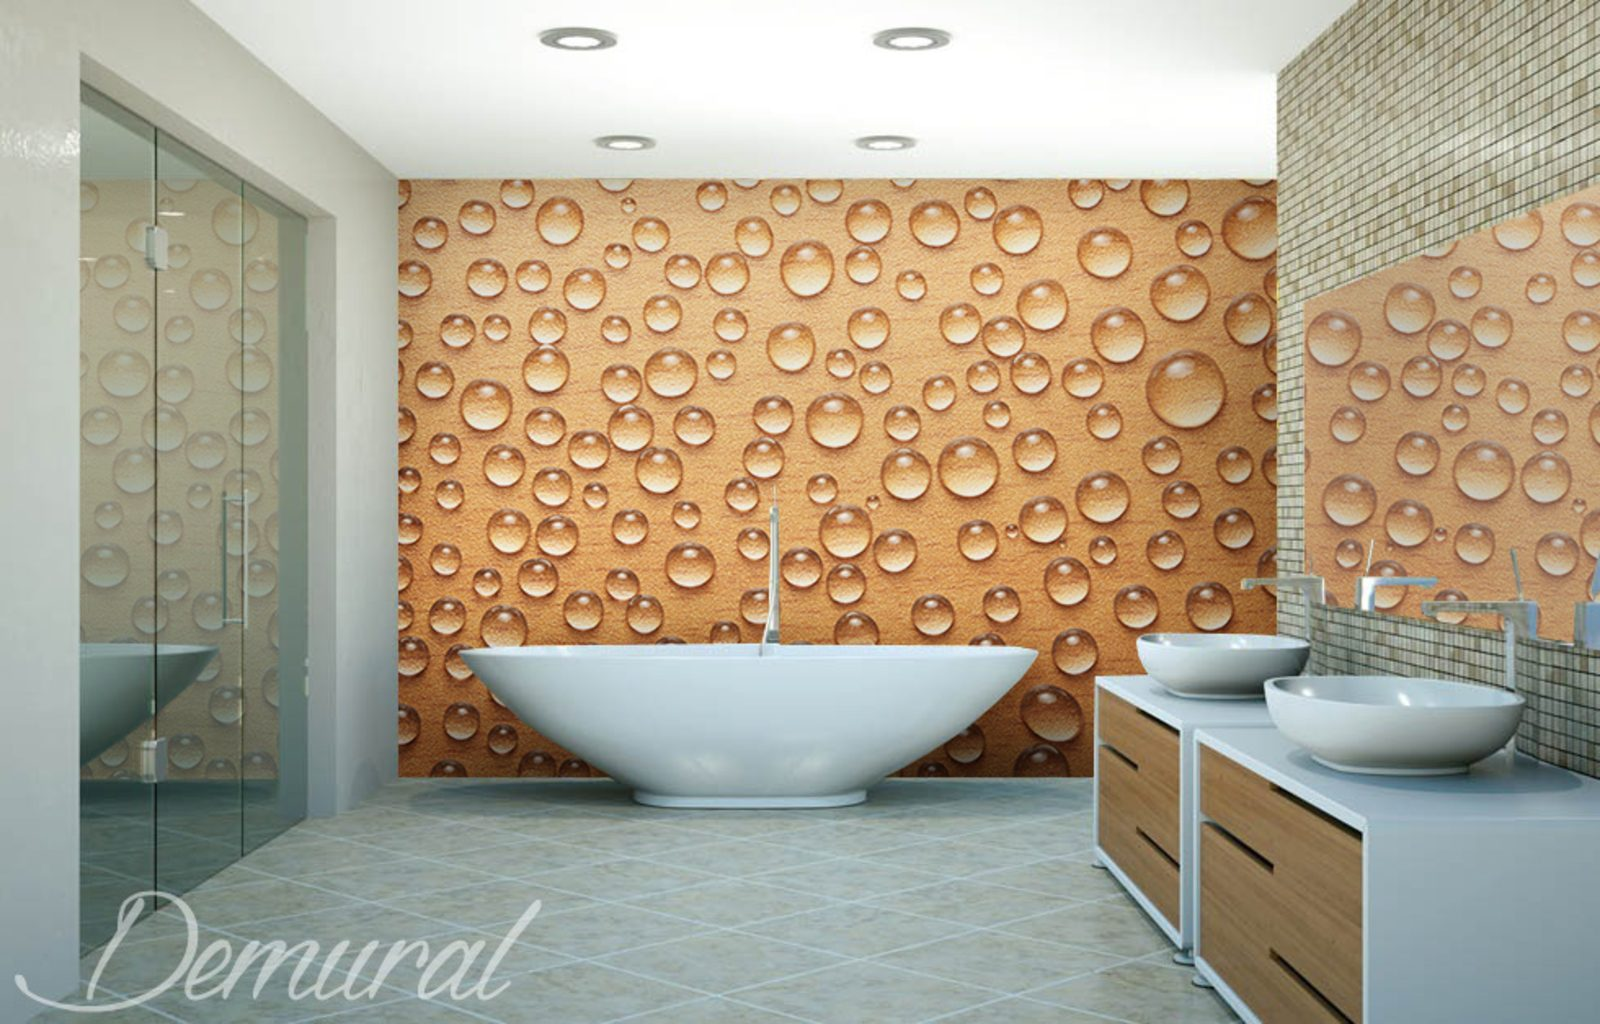 A foam bath bathroom wallpaper mural photo wallpapers for Bathroom wall mural